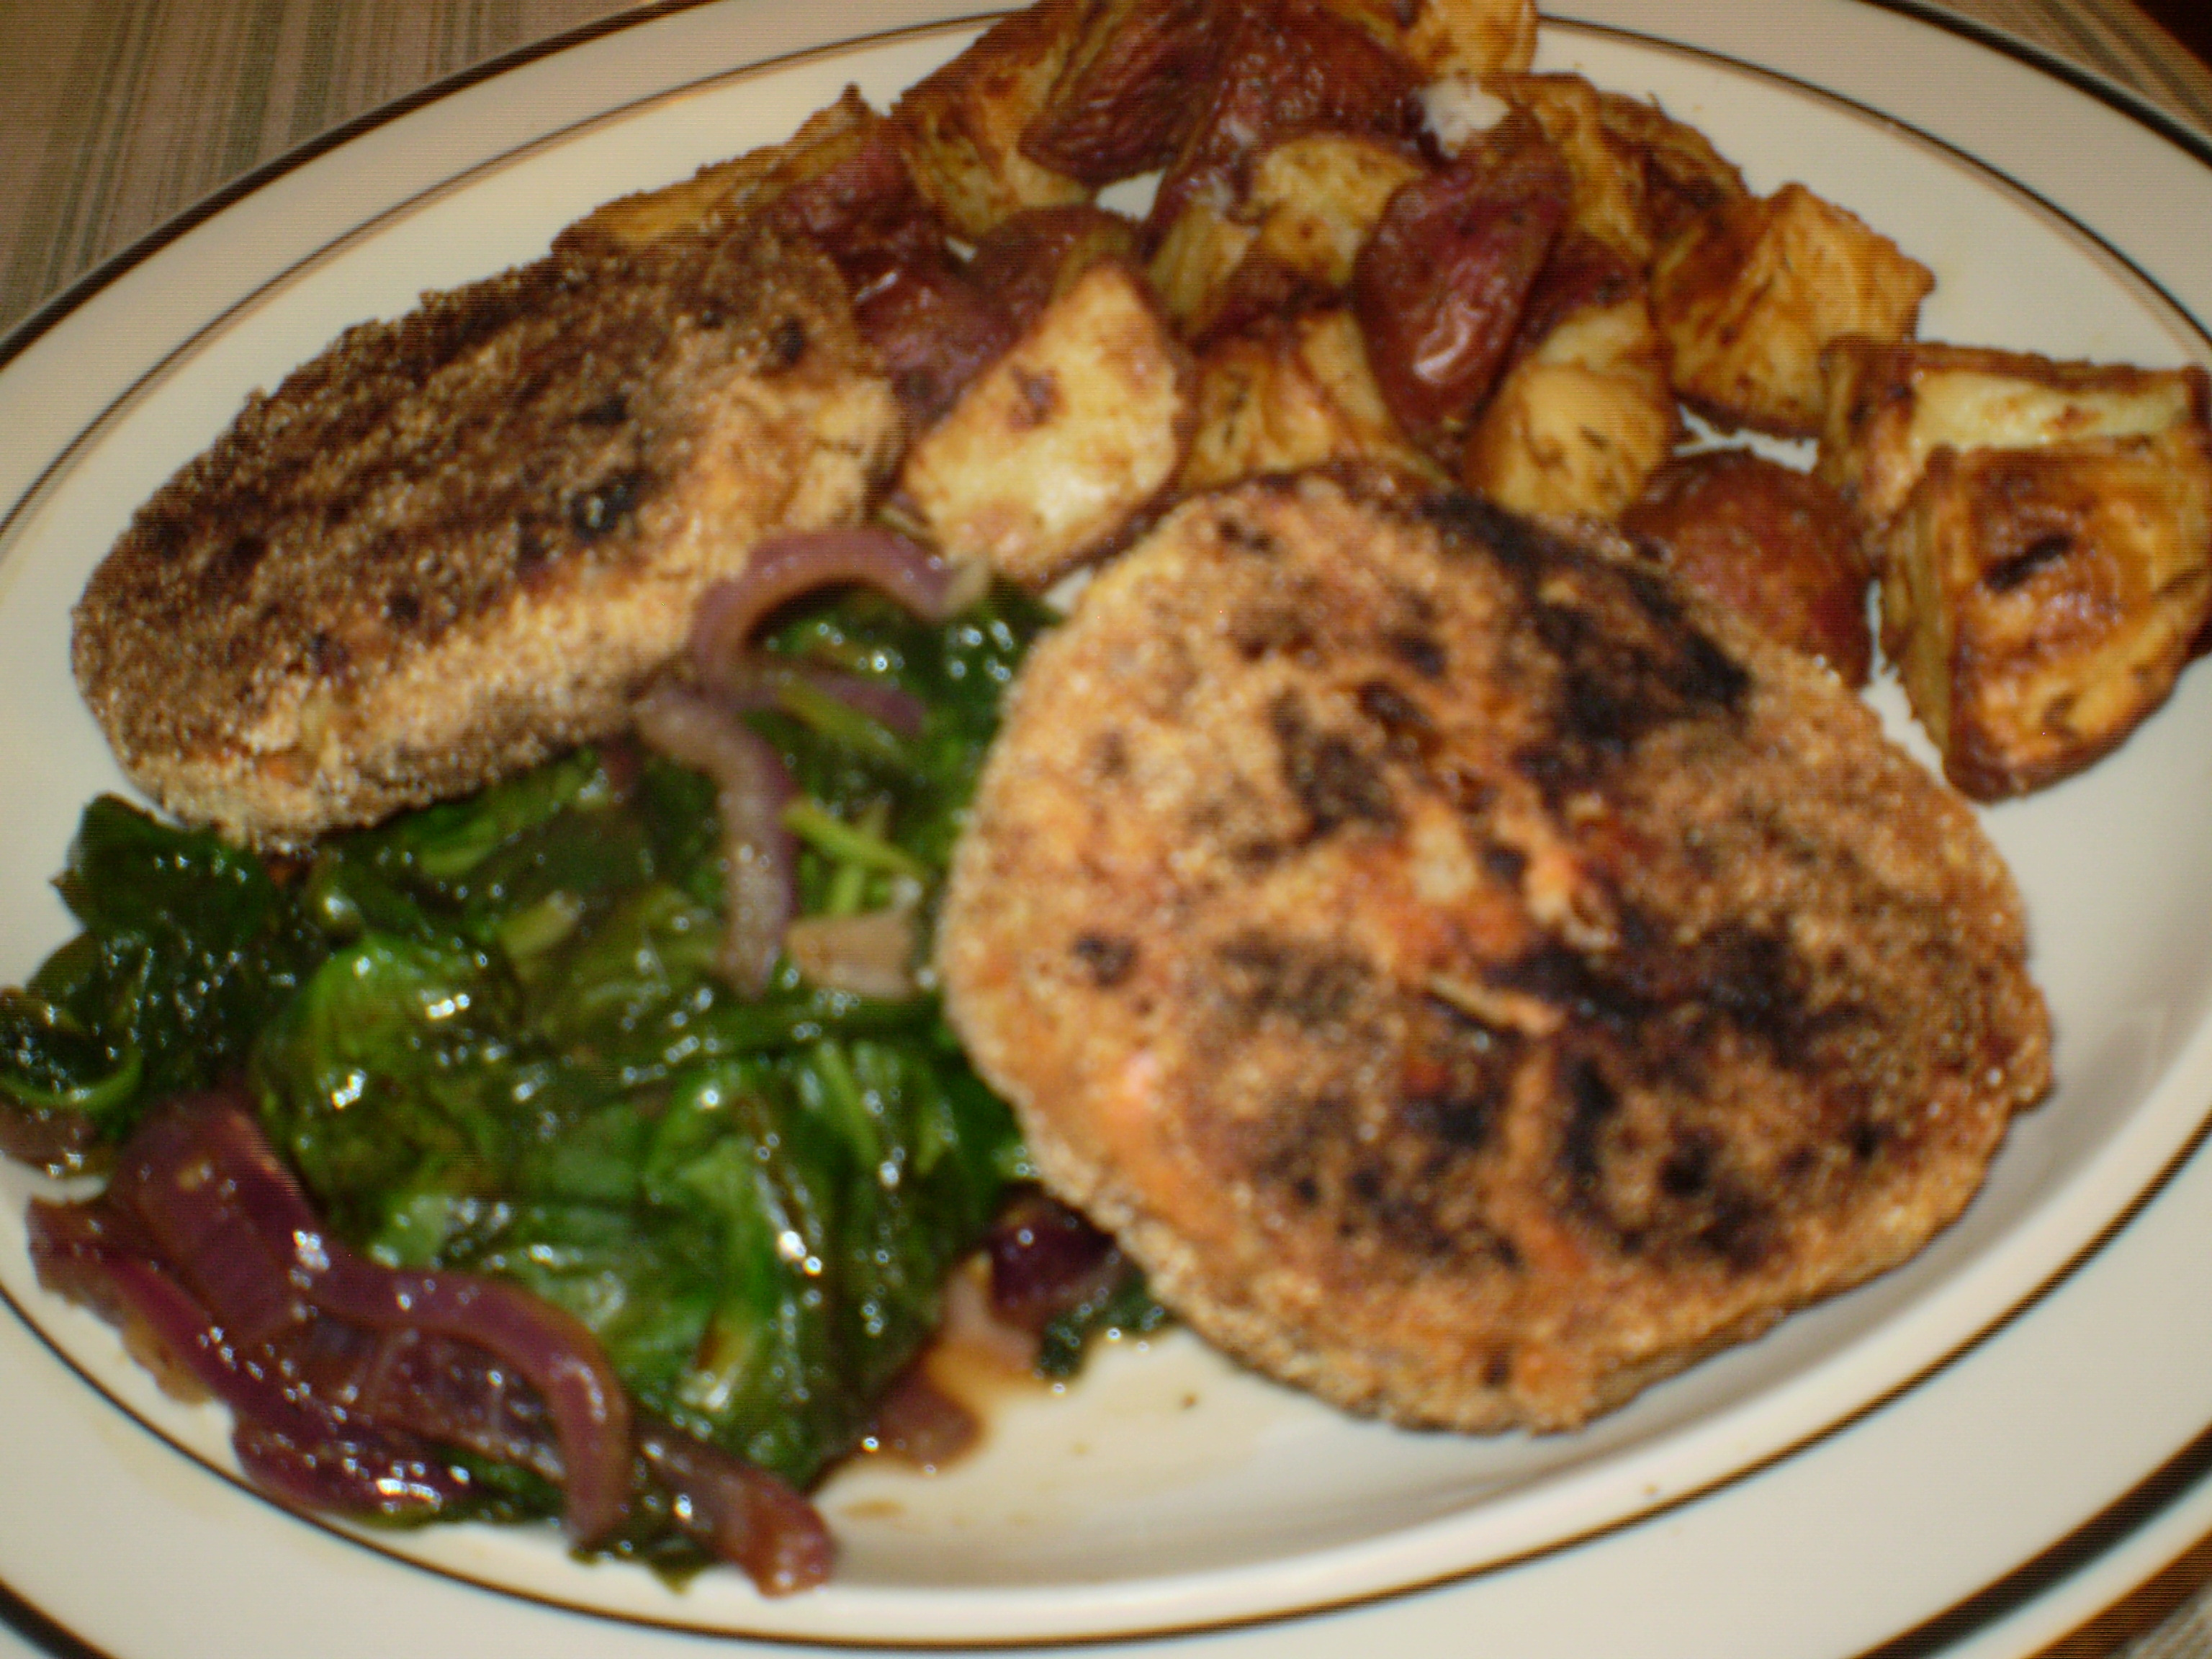 ... salmon croquettes on the menu: a delicious salmon cake deep fried and